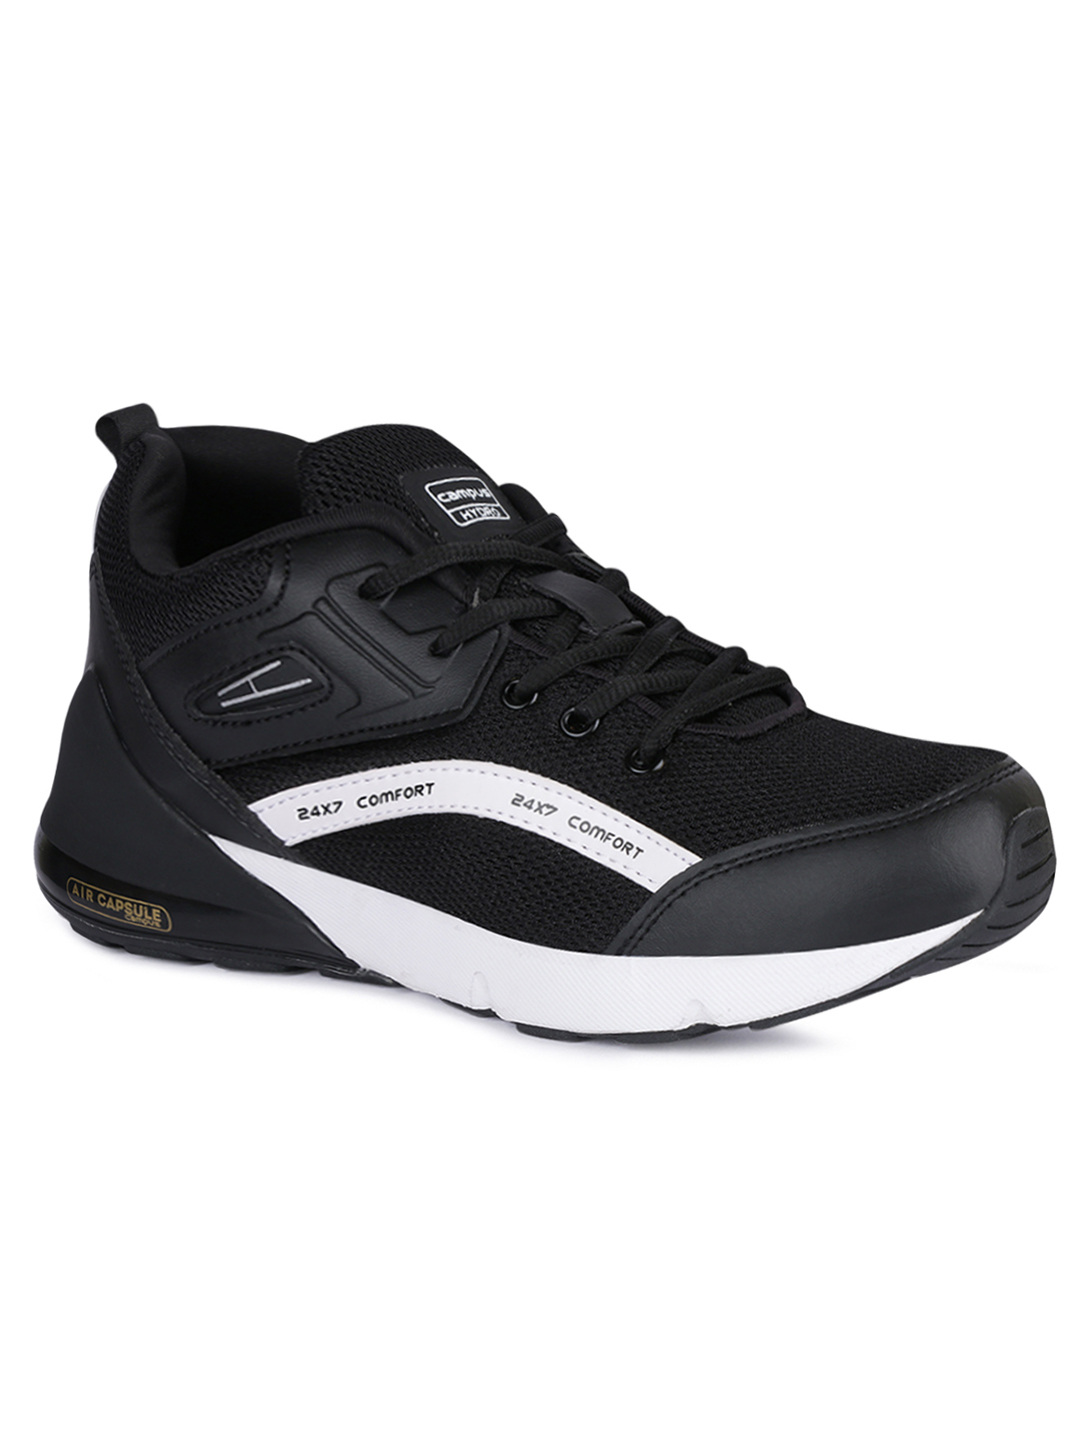 Campus Shoes | Black Hydro Running Shoes